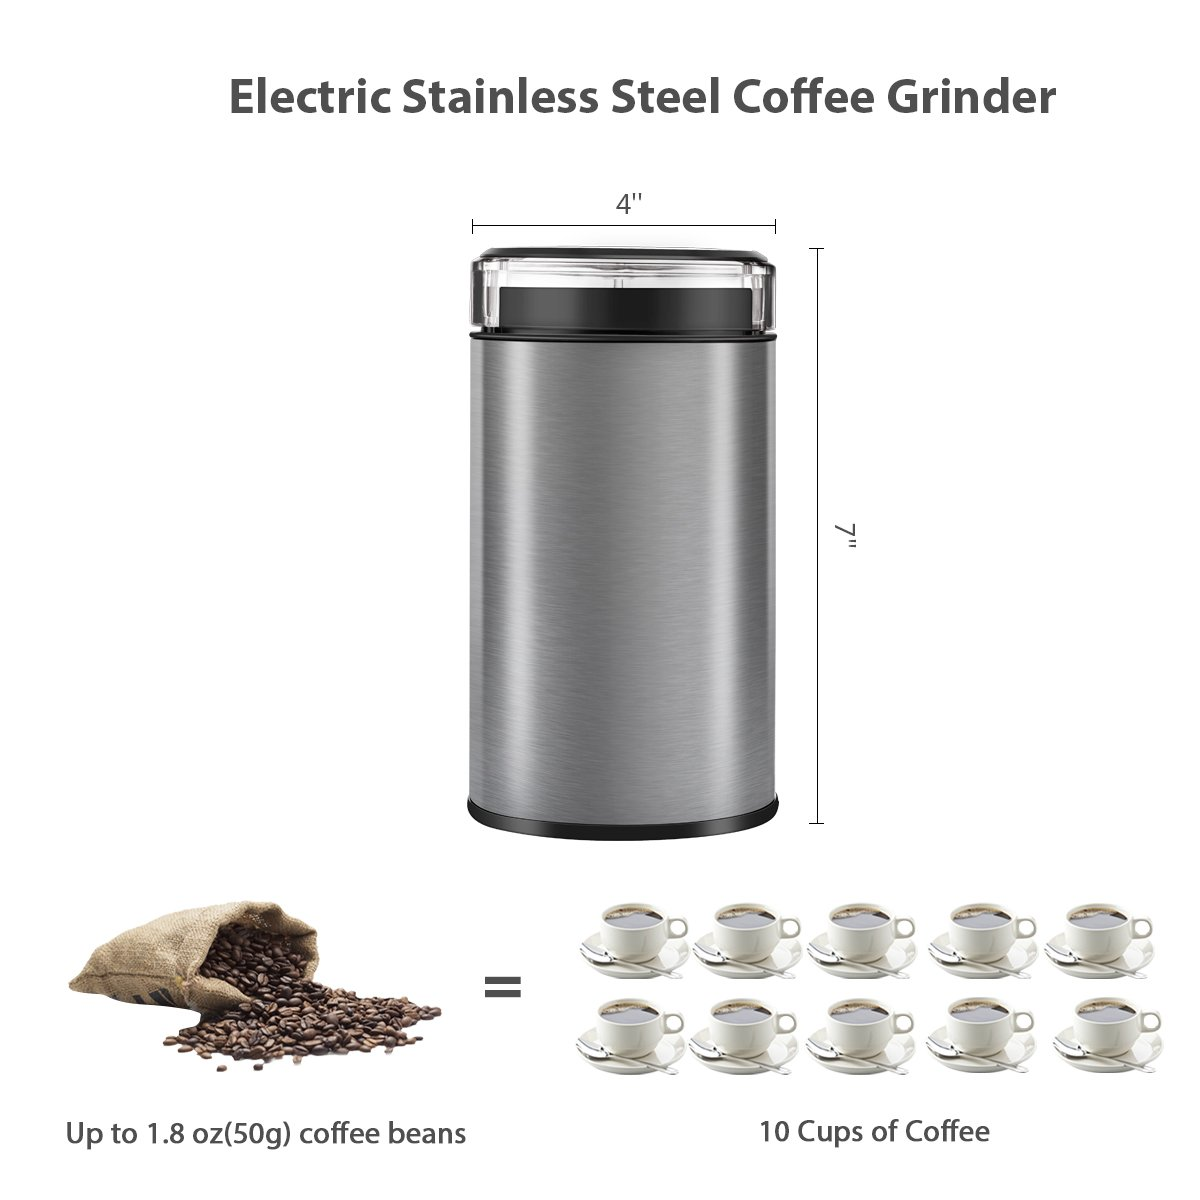 Coffee Grinder Electric, TOBOX Multifunctional Stainless Steel Blade Coffee Grinder Fast Grinding Coffee Beans, Nuts, Grains, Spices (Sliver) by TOBOX (Image #4)